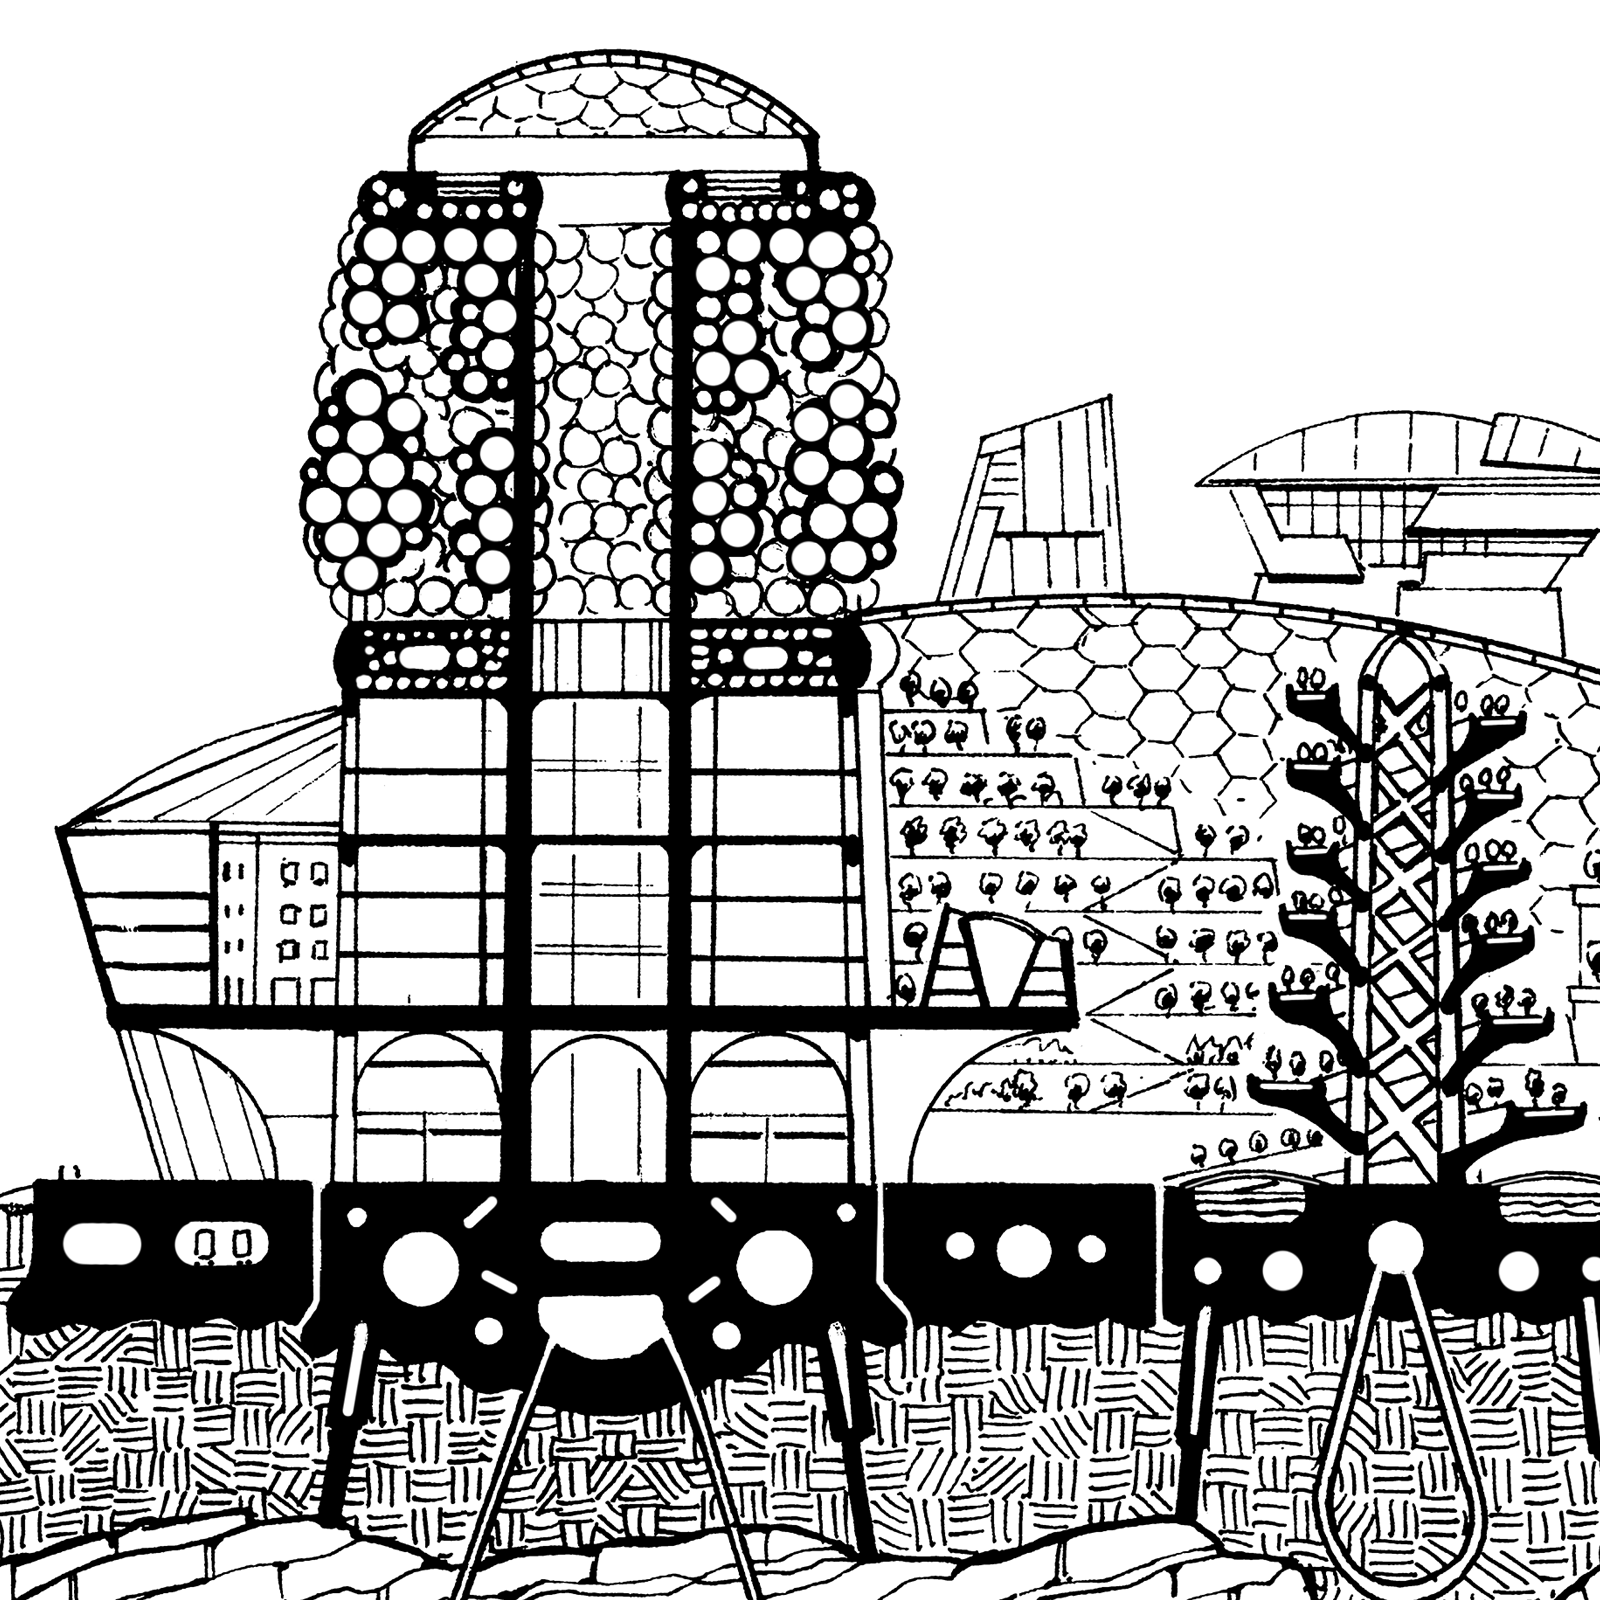 Marc Ngui woldbuilding city cross section